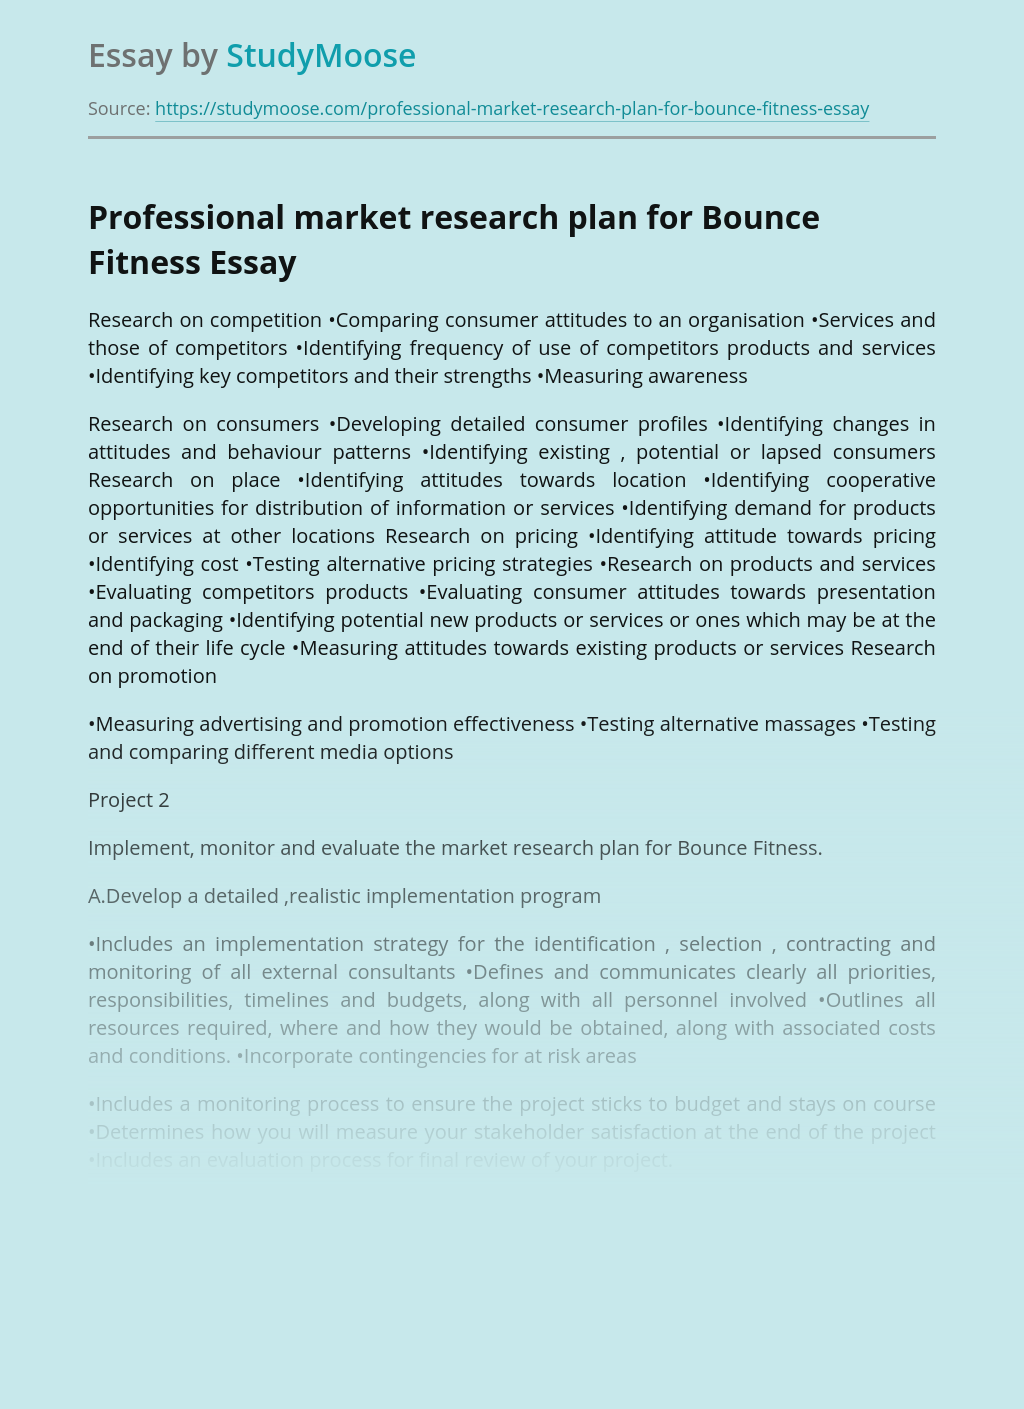 Professional market research plan for Bounce Fitness